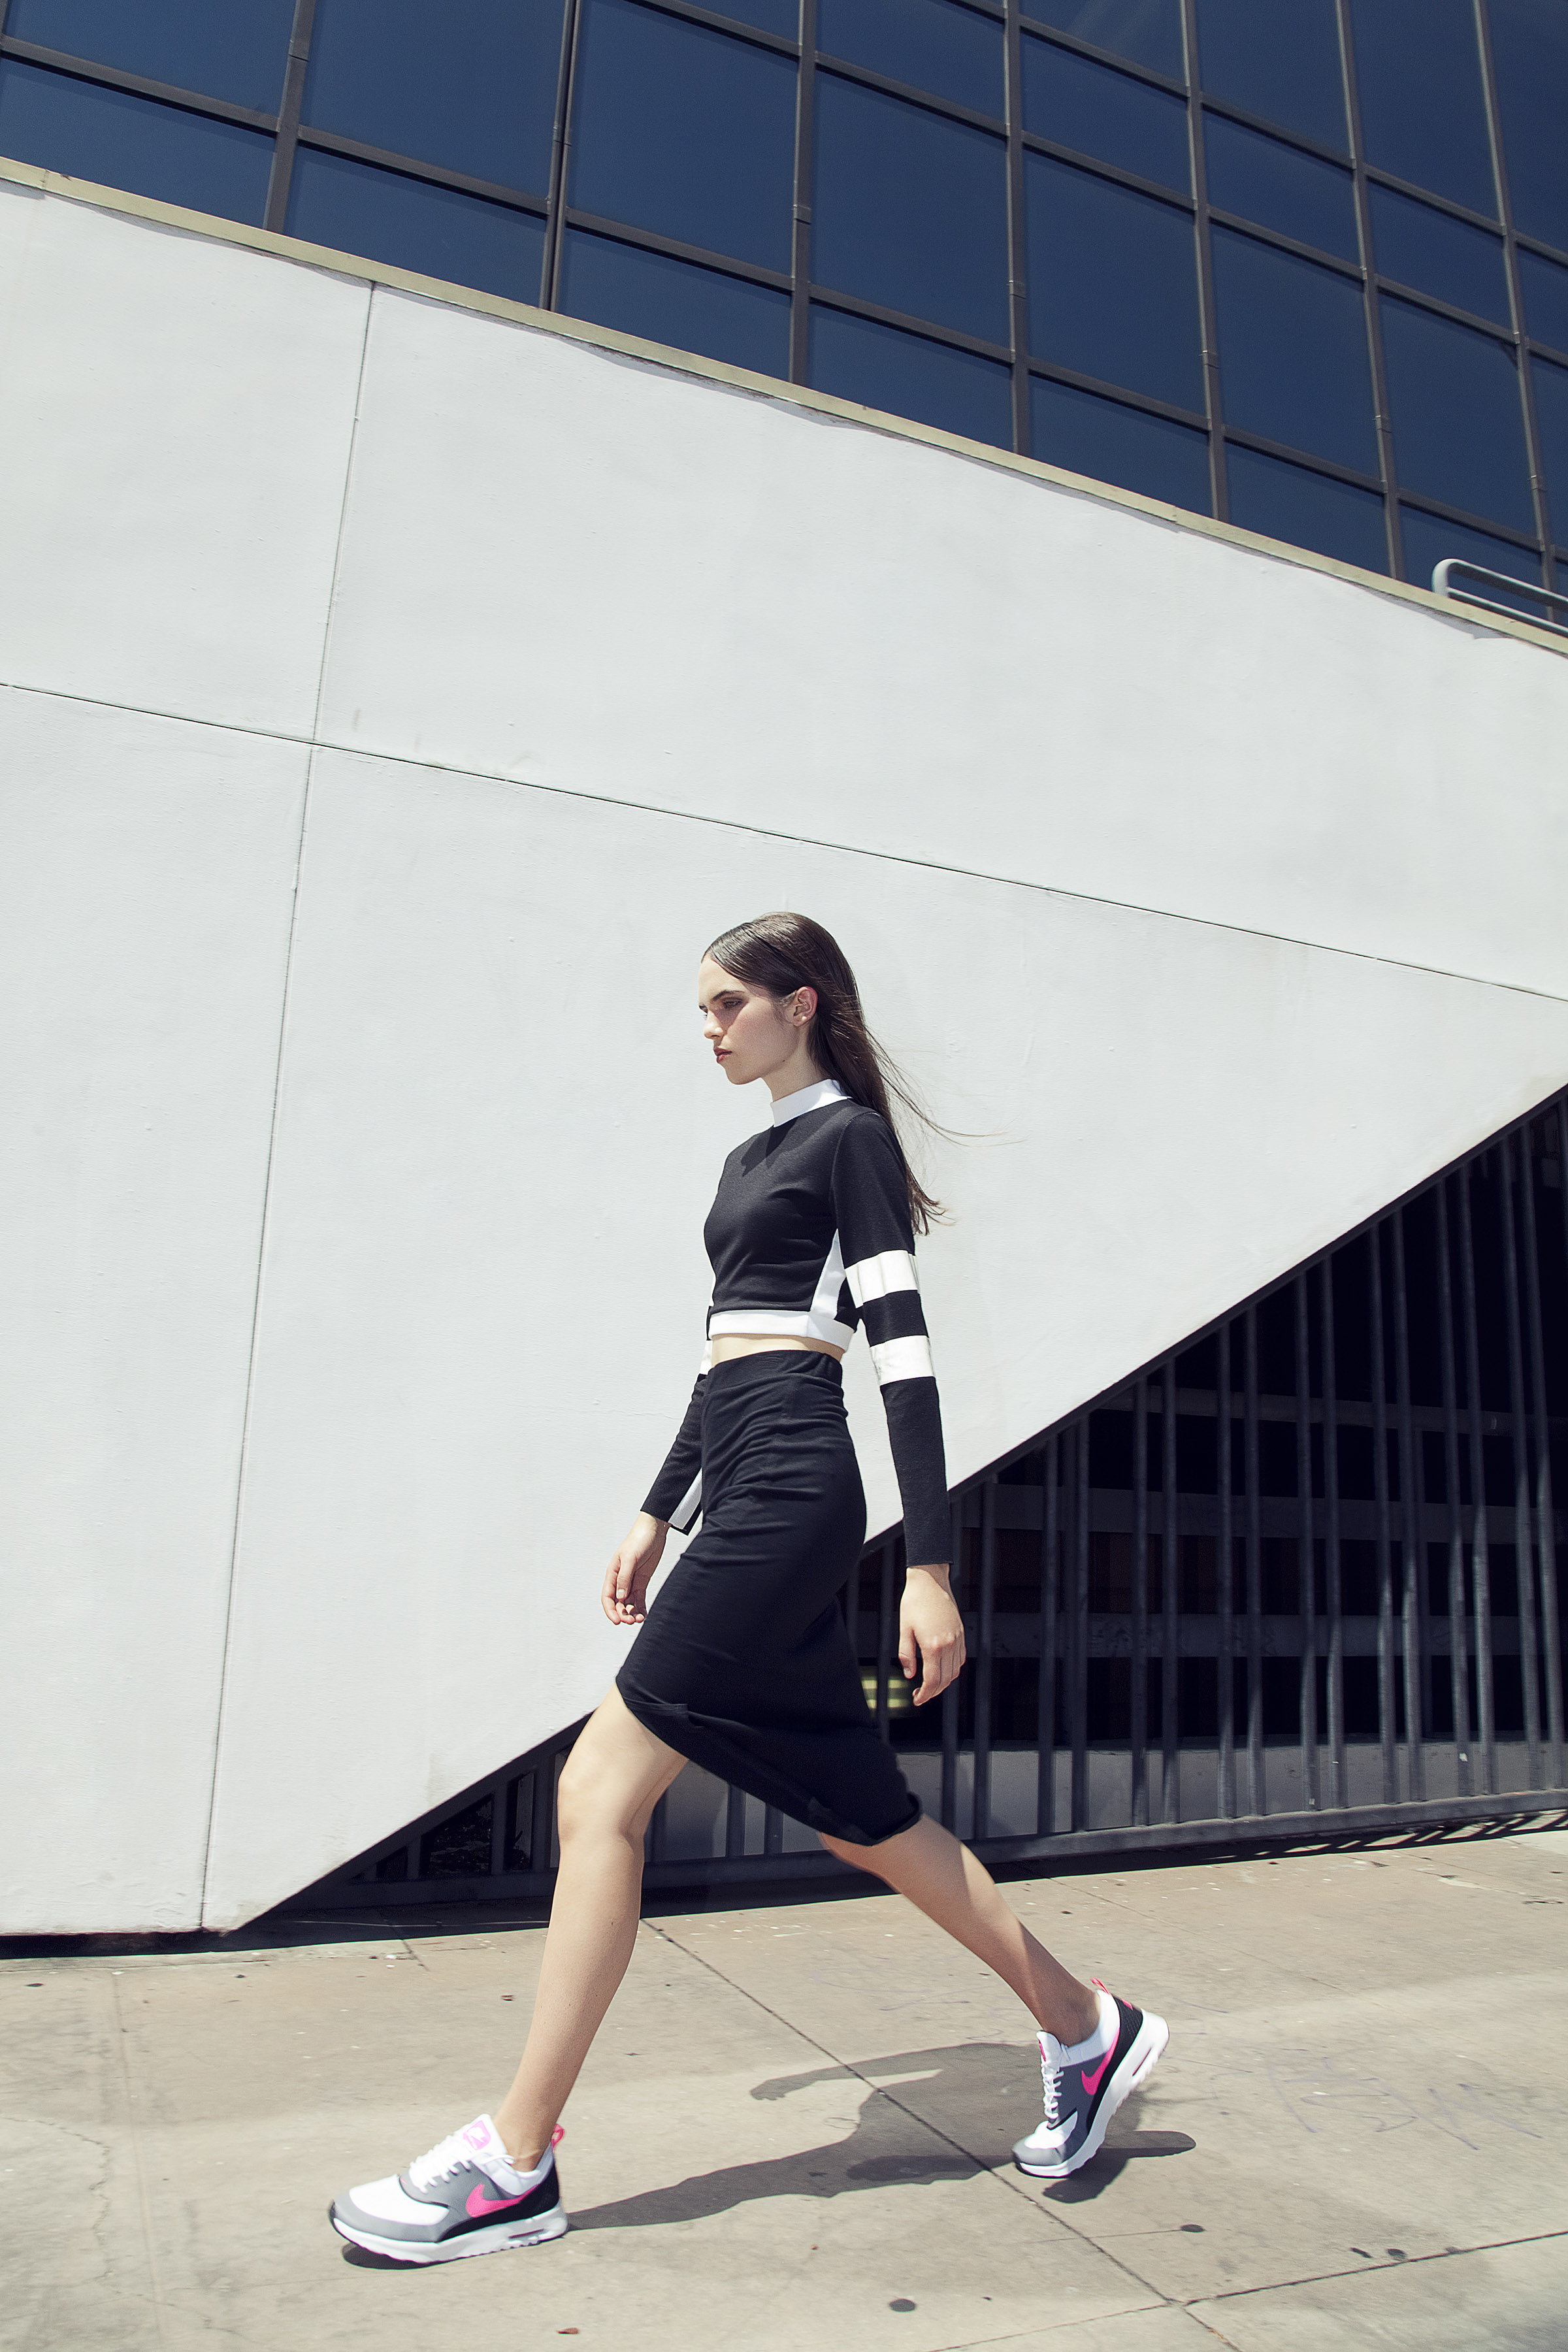 BRAZEN for Ladygunn Mag by Di Henri & styled by Keyla Marquez  (REFLECTIVE STRIPE CROP TOP)